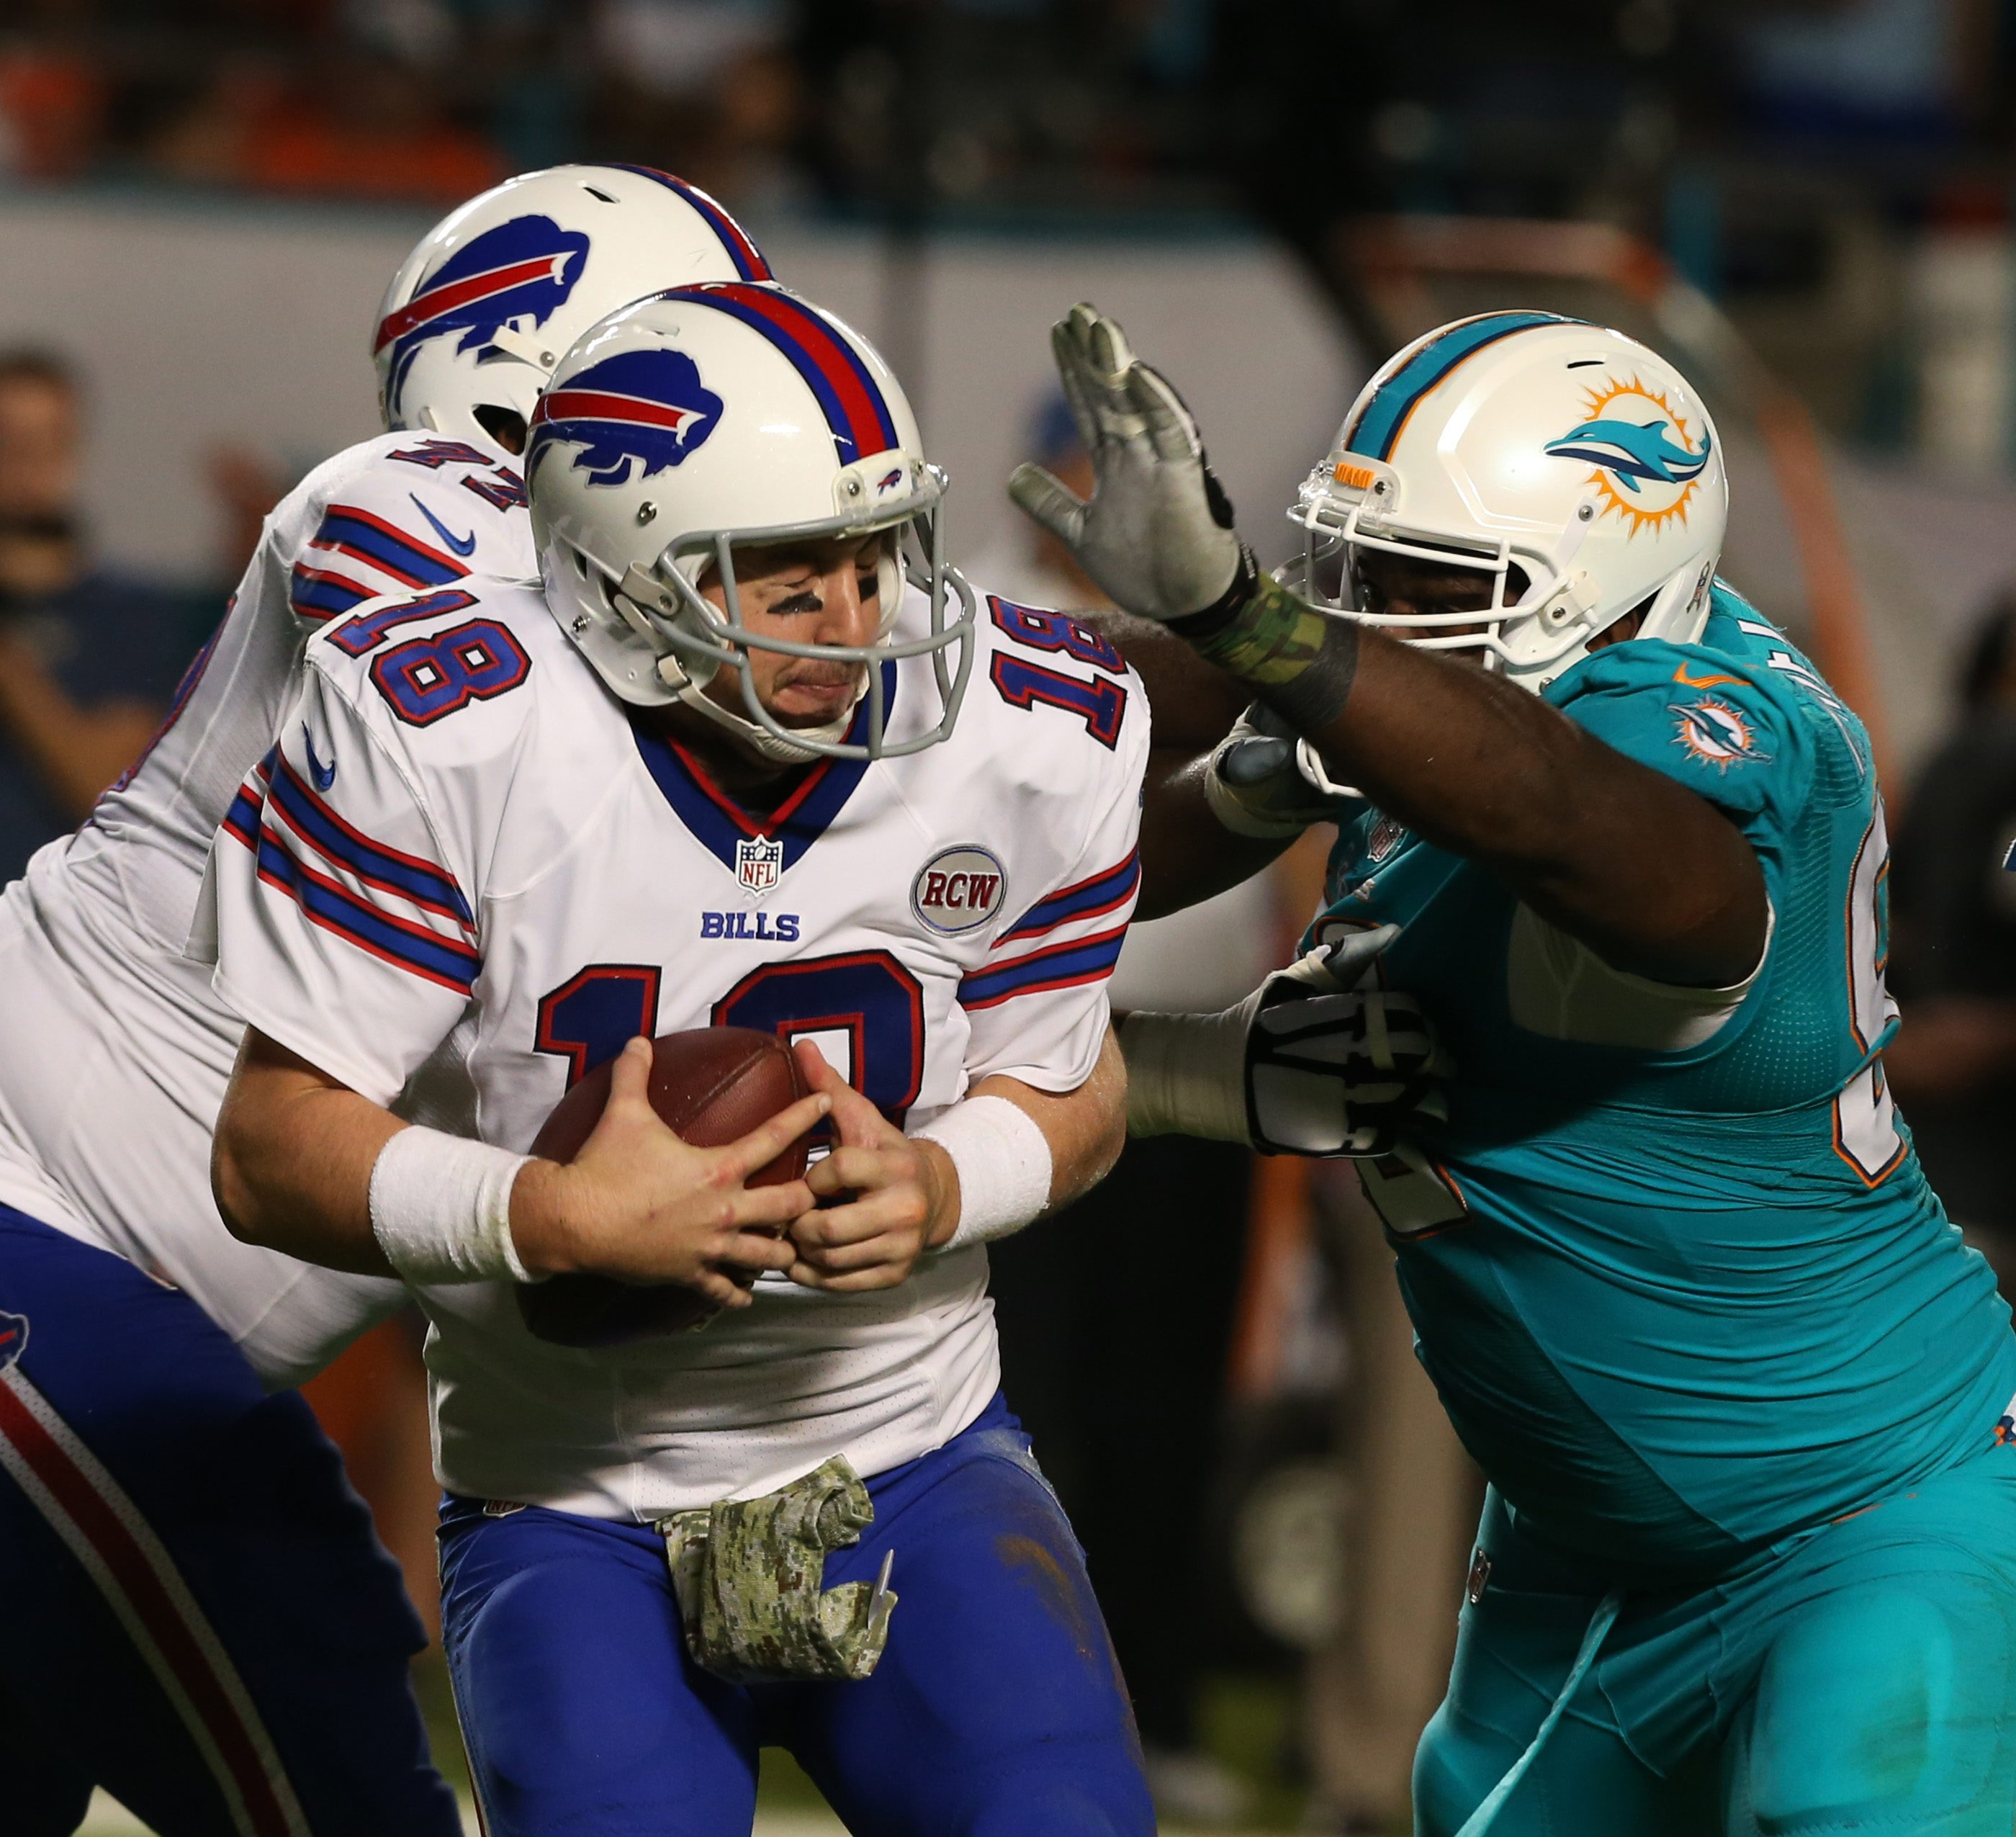 Buffalo Bills quarterback Kyle Orton (18) is sacked by Miami Dolphins defensive tackle Earl Mitchell (90) in the fourth quarter of the Bills' 2014 loss in Miami. (James P. McCoy/ Buffalo News)